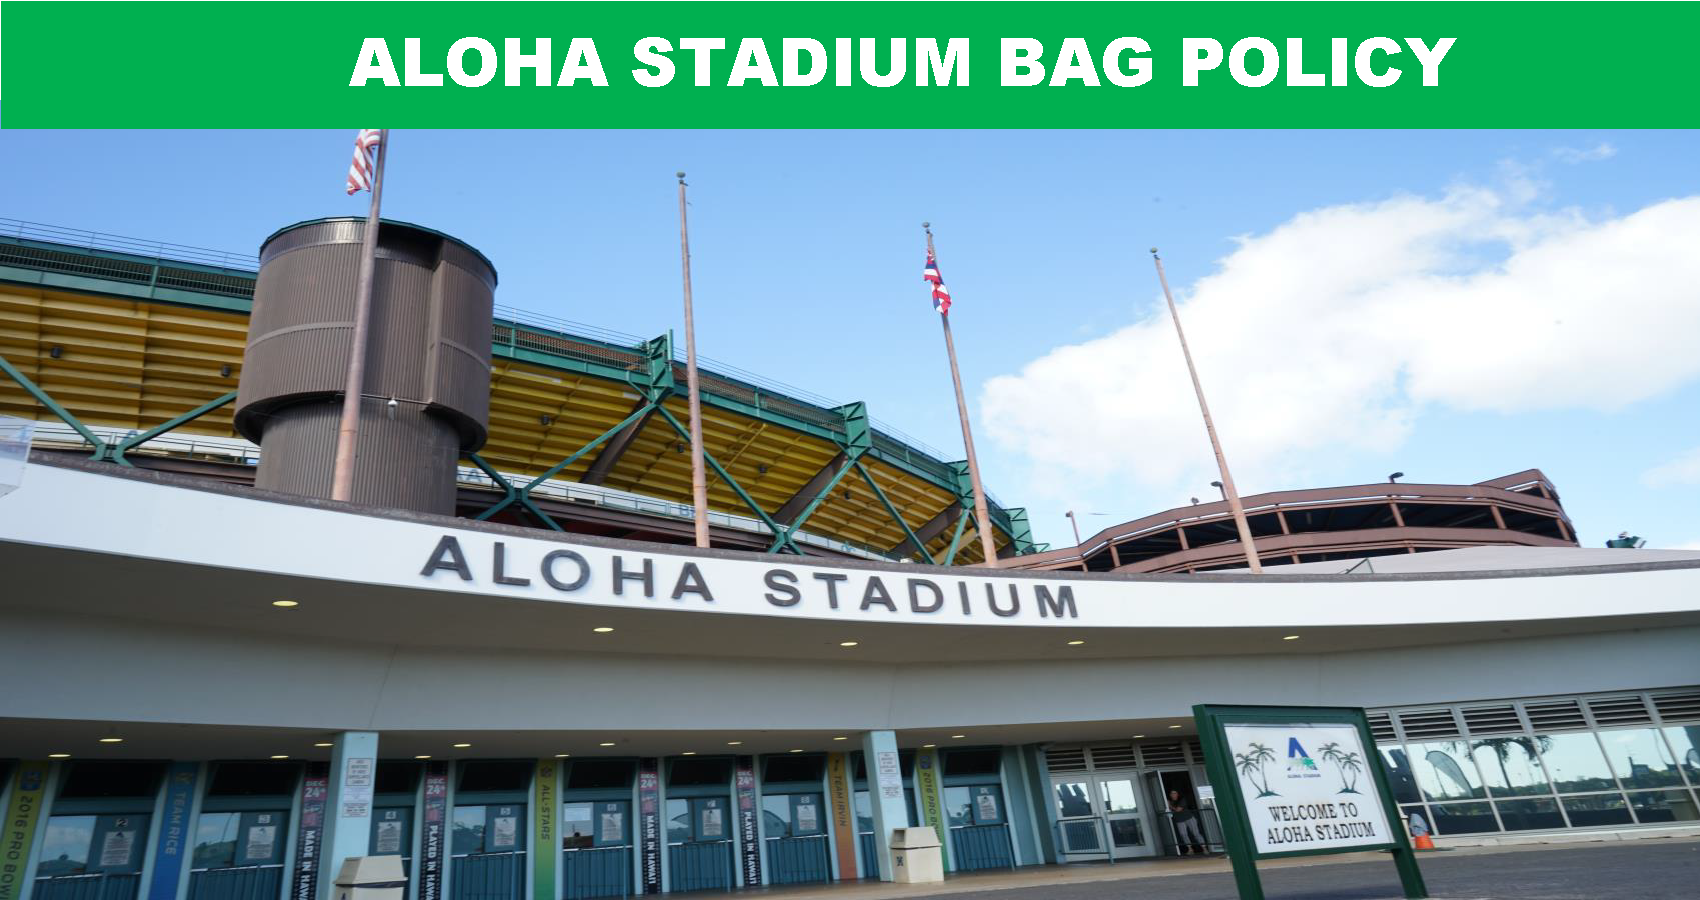 aloha stadium front view with new bag policy copy